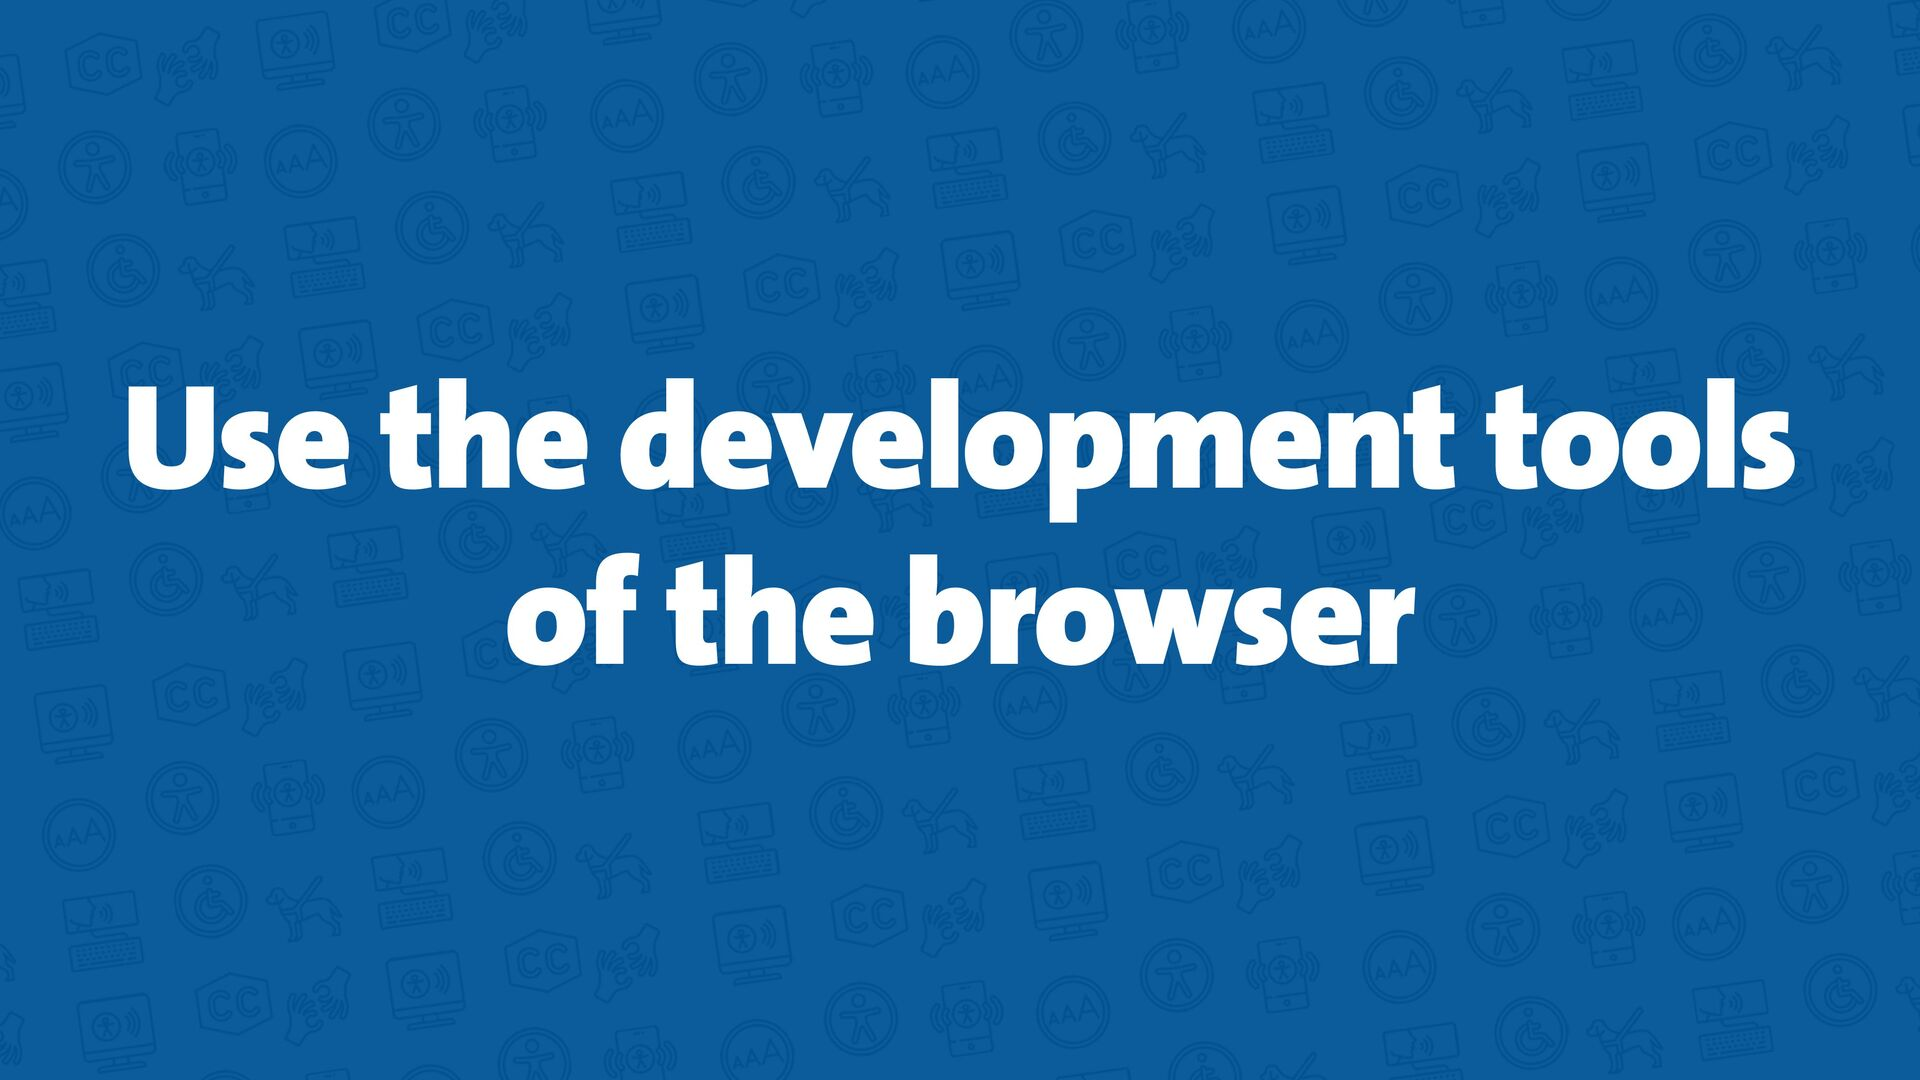 Use the development tools of the browser